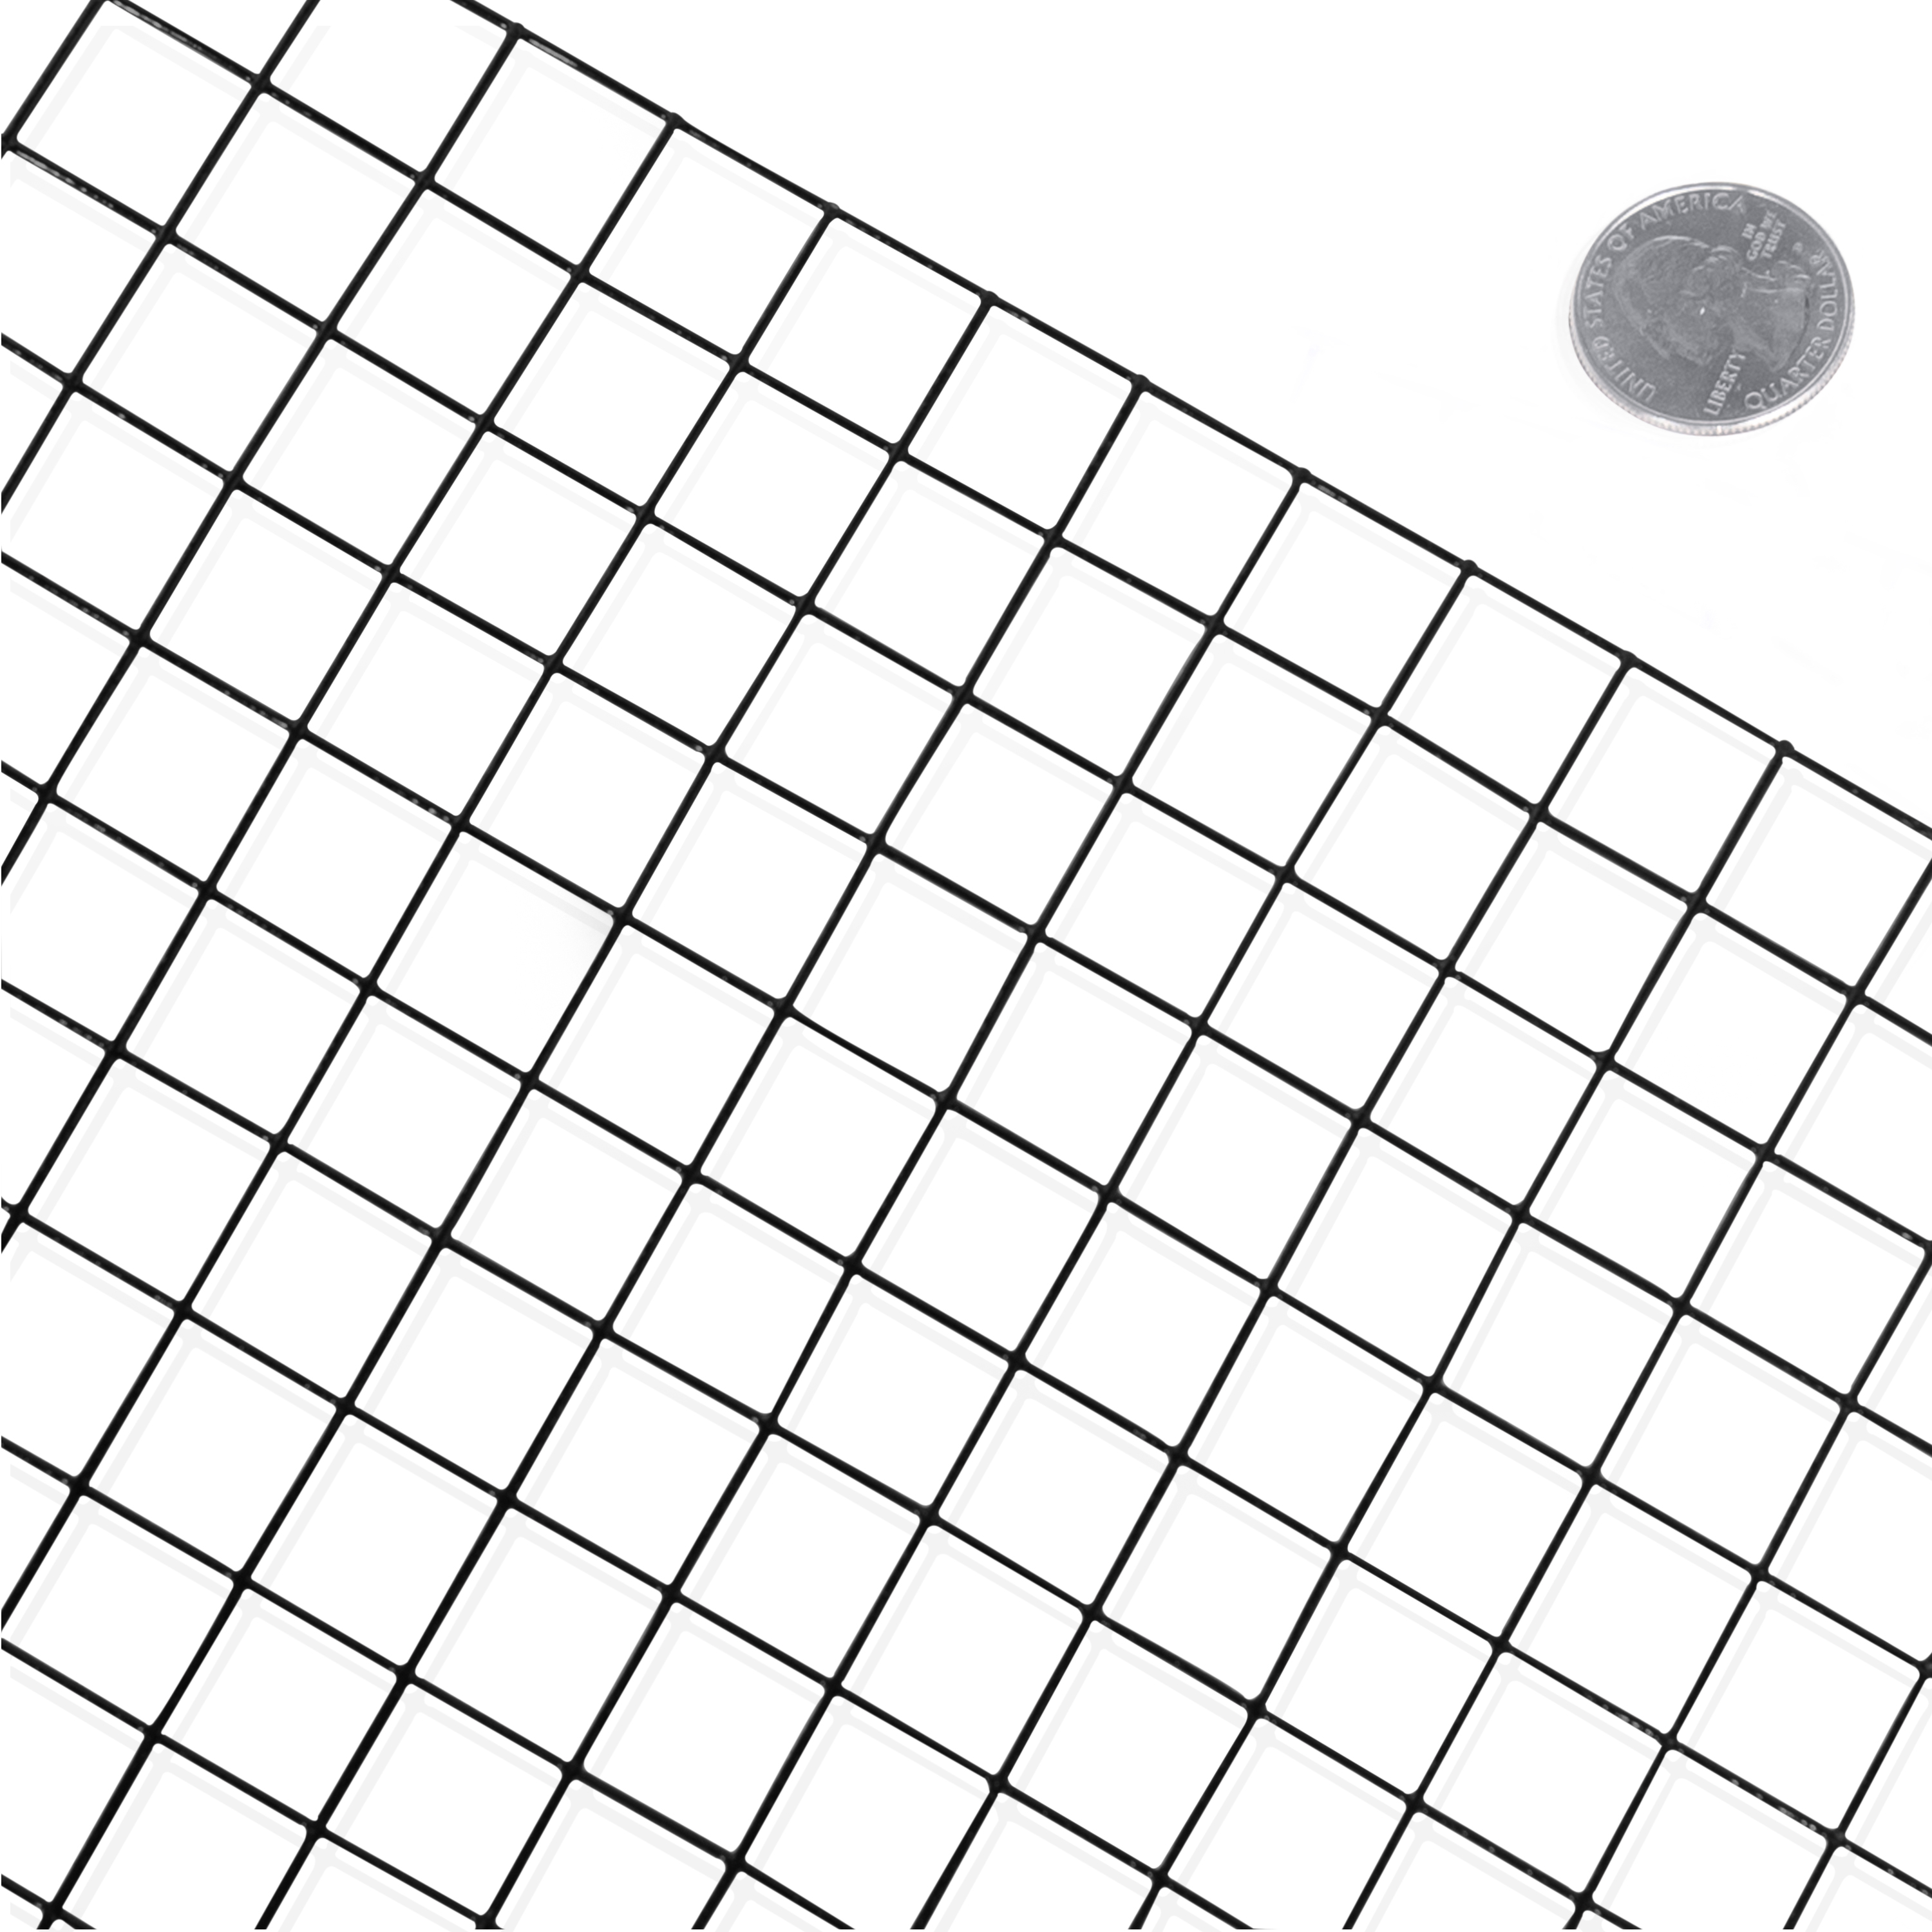 Fencer Wire 16 Gauge Black Vinyl Coated Welded Wire Mesh Size 1 inch by 1 inch (2 ft. x 100 ft.)